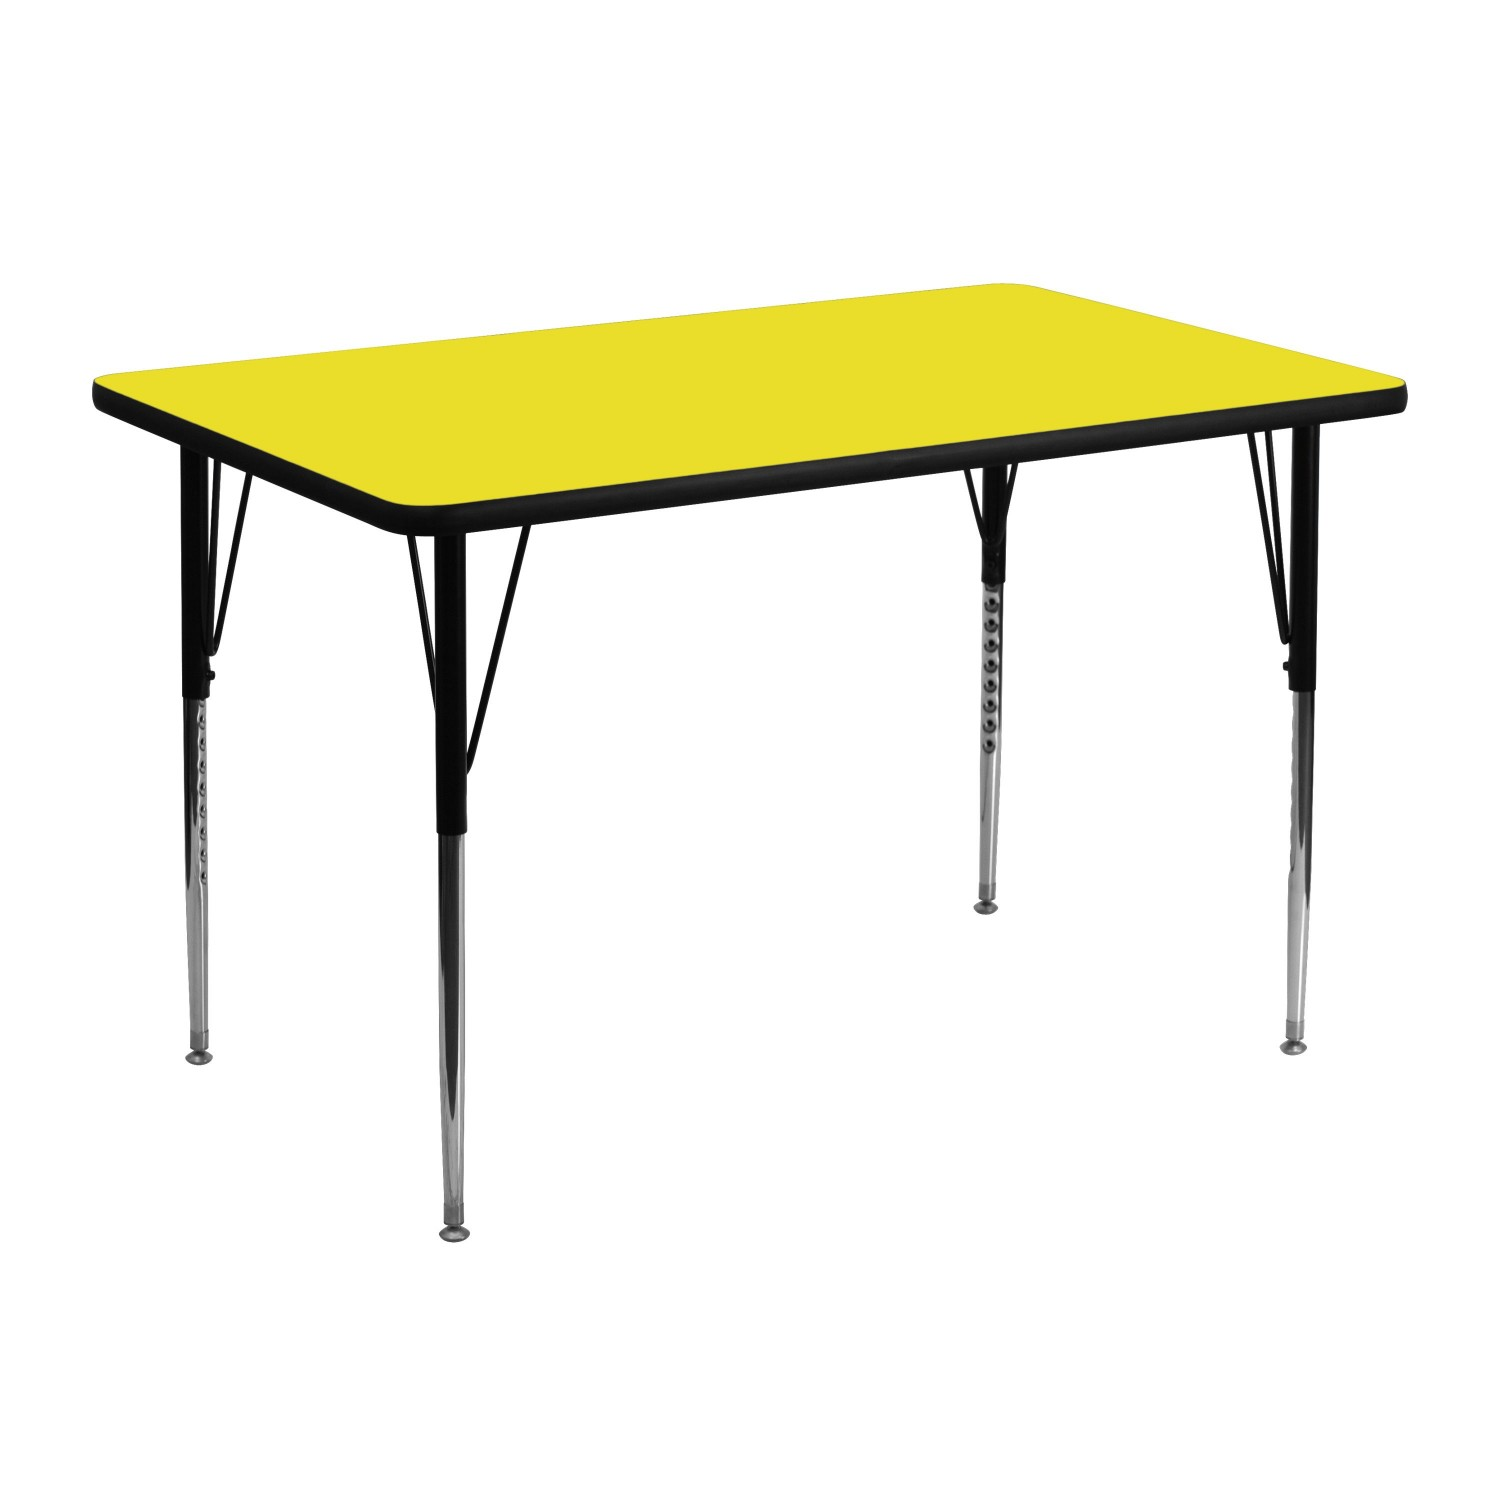 "Flash Furniture XU-A3048-REC-YEL-H-A-GG Rectangular Activity Table, High Pressure Yellow Laminate Top, Standard Height Adjustable Legs 30"" x 48"""